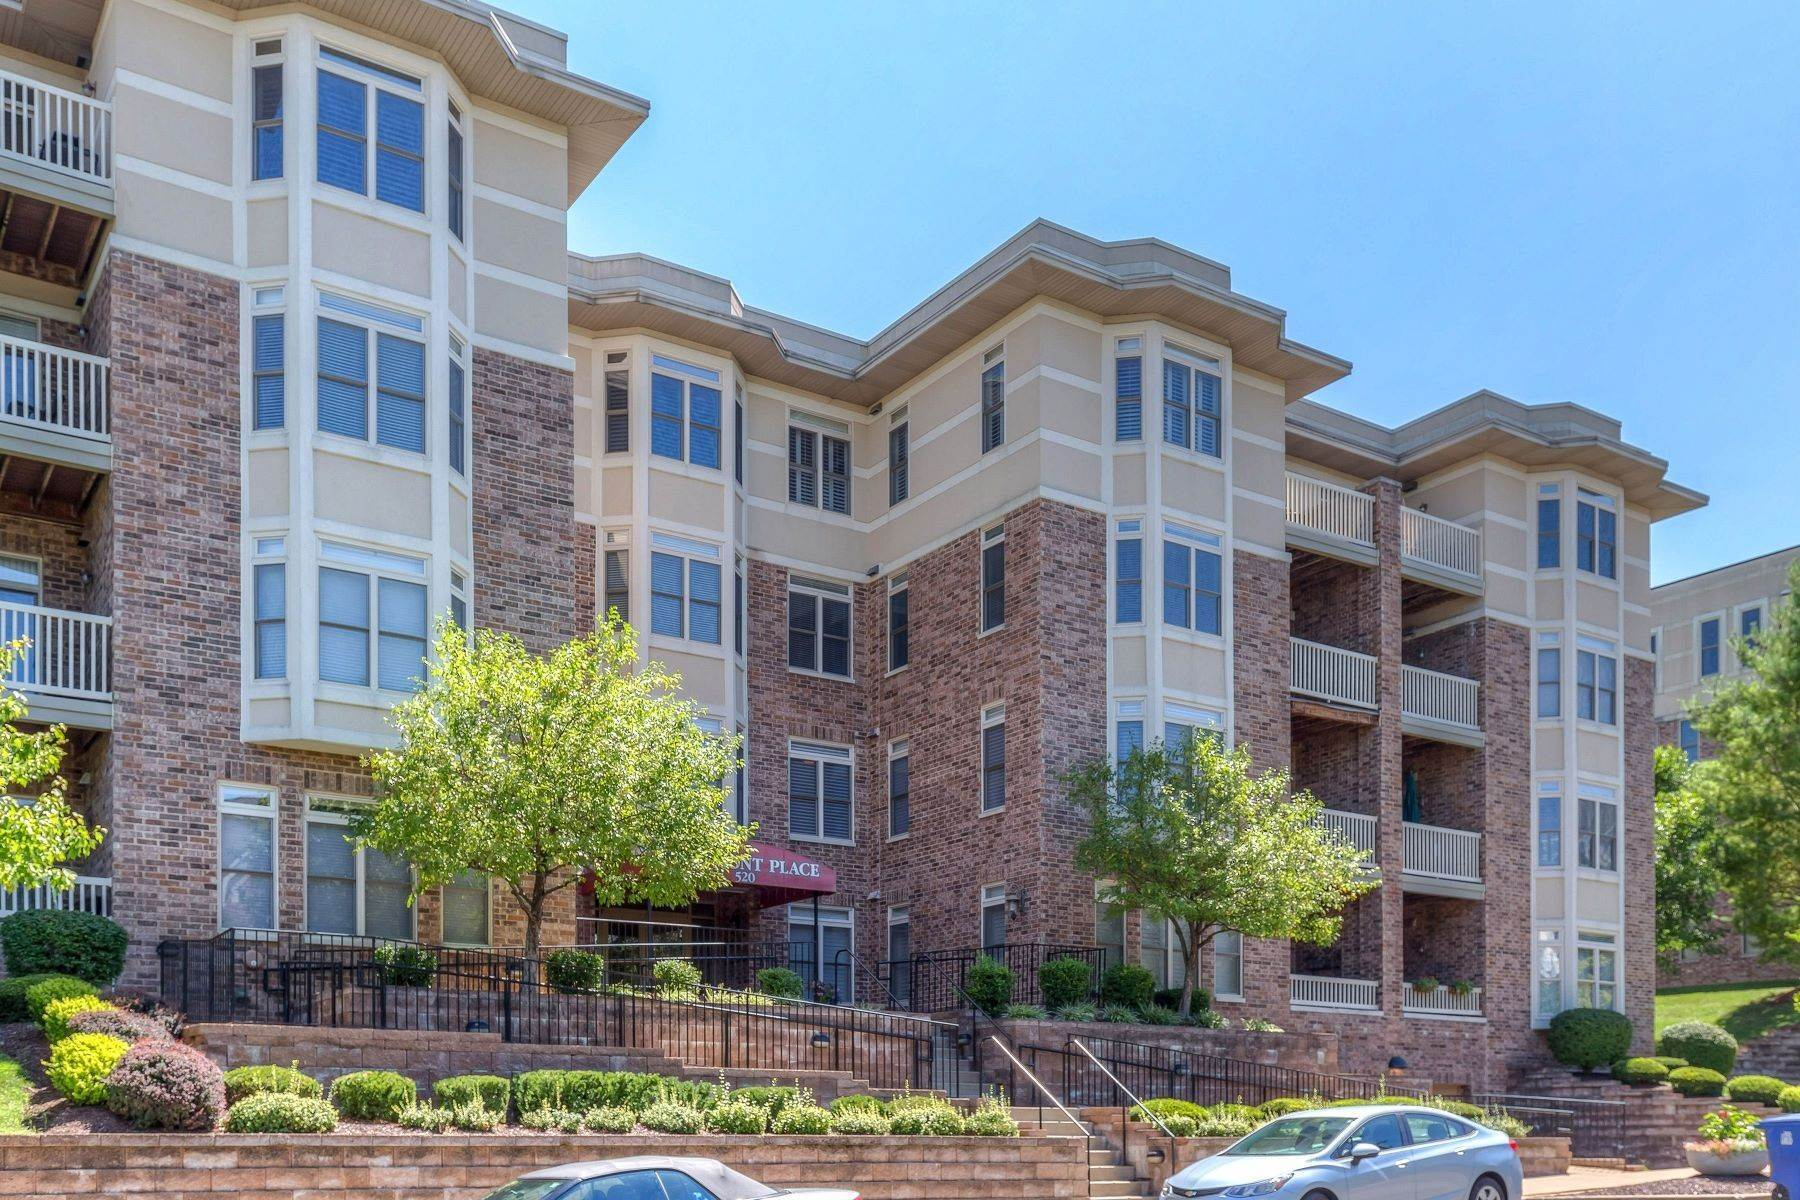 Condominiums for Sale at Impeccable Claymont Place Condo 520 North and South Road, #201 University City, Missouri 63130 United States